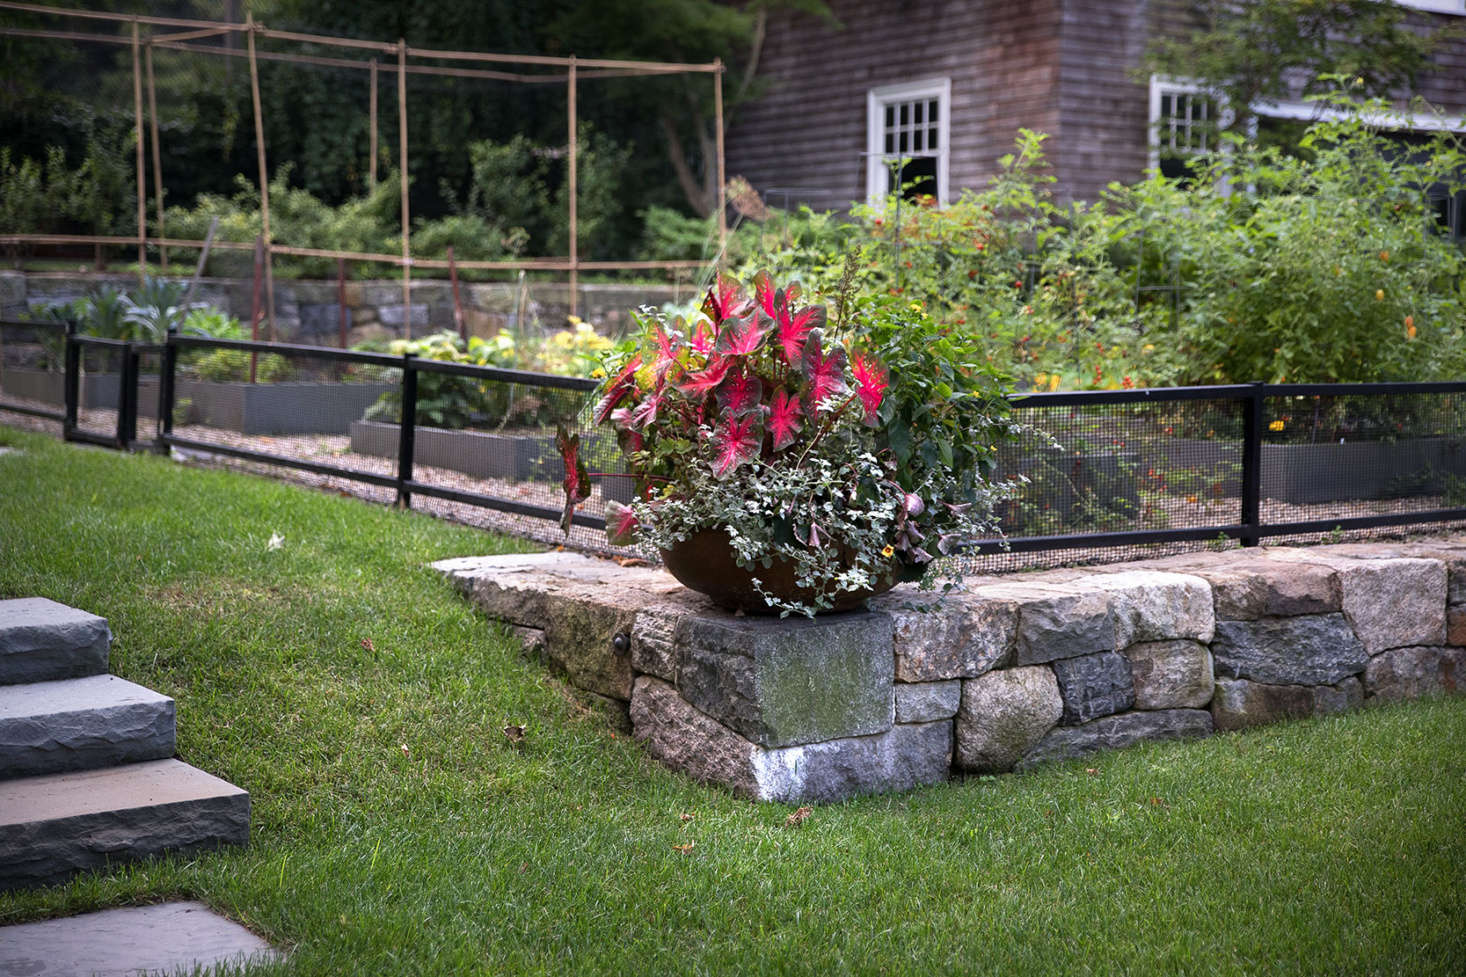 Though most of the property is planted with natives and perennials, a planter provides a space for some colorful annuals.